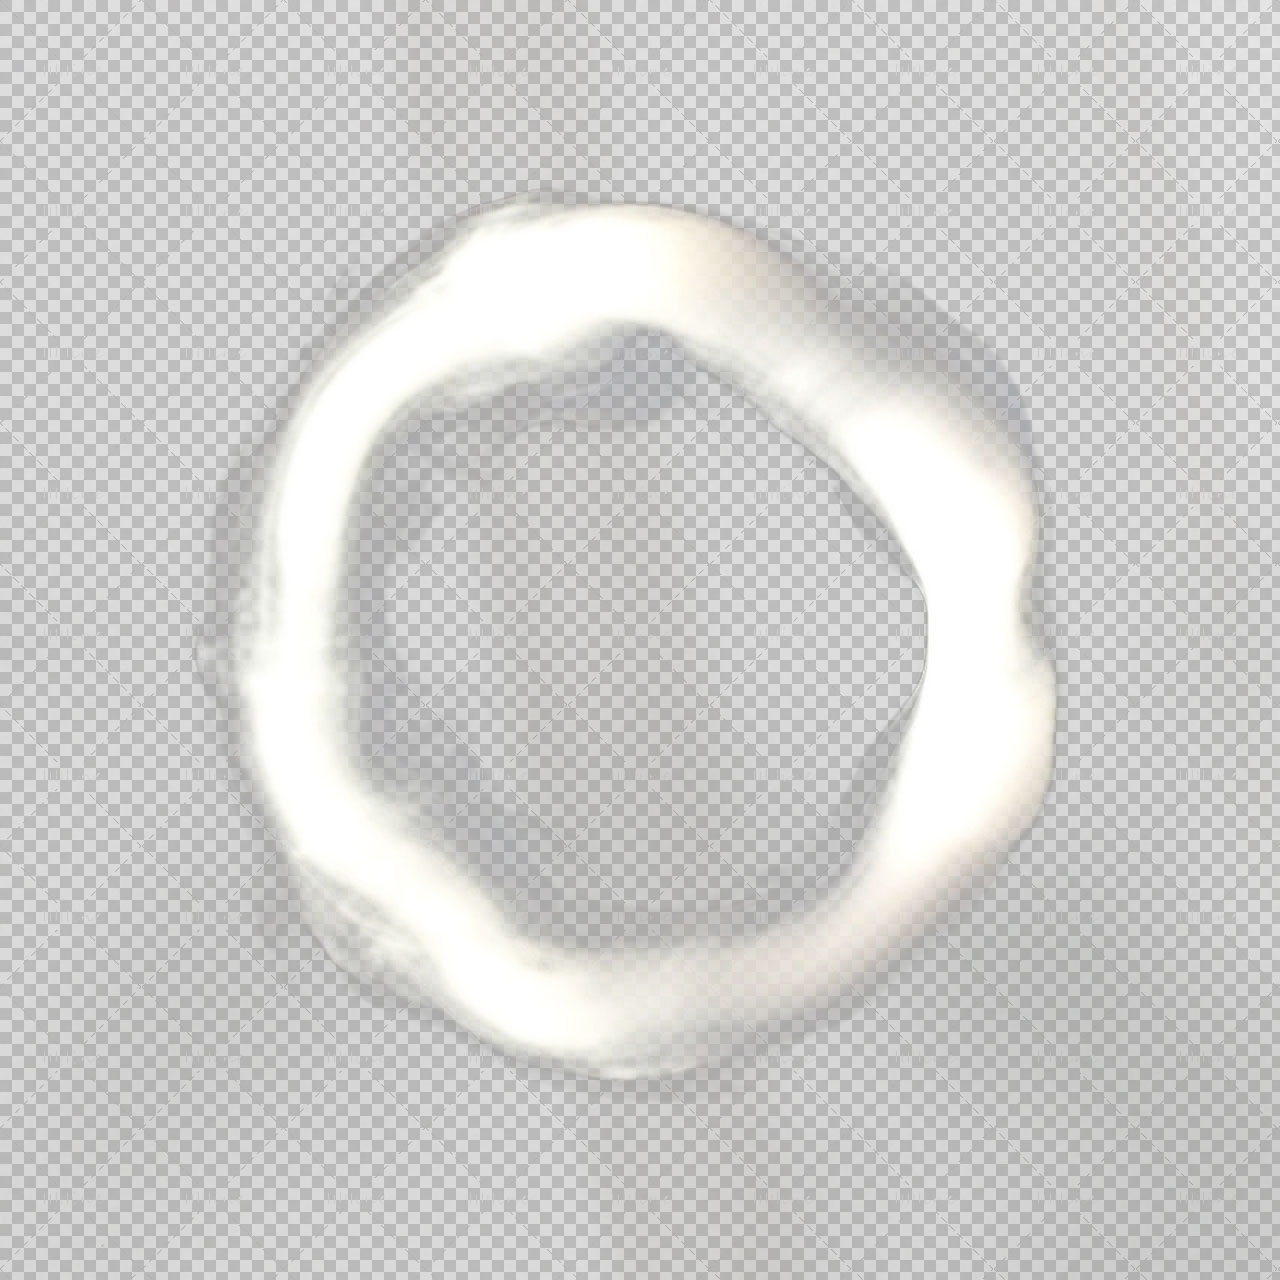 Cigarette Smoke Circle Transparent png